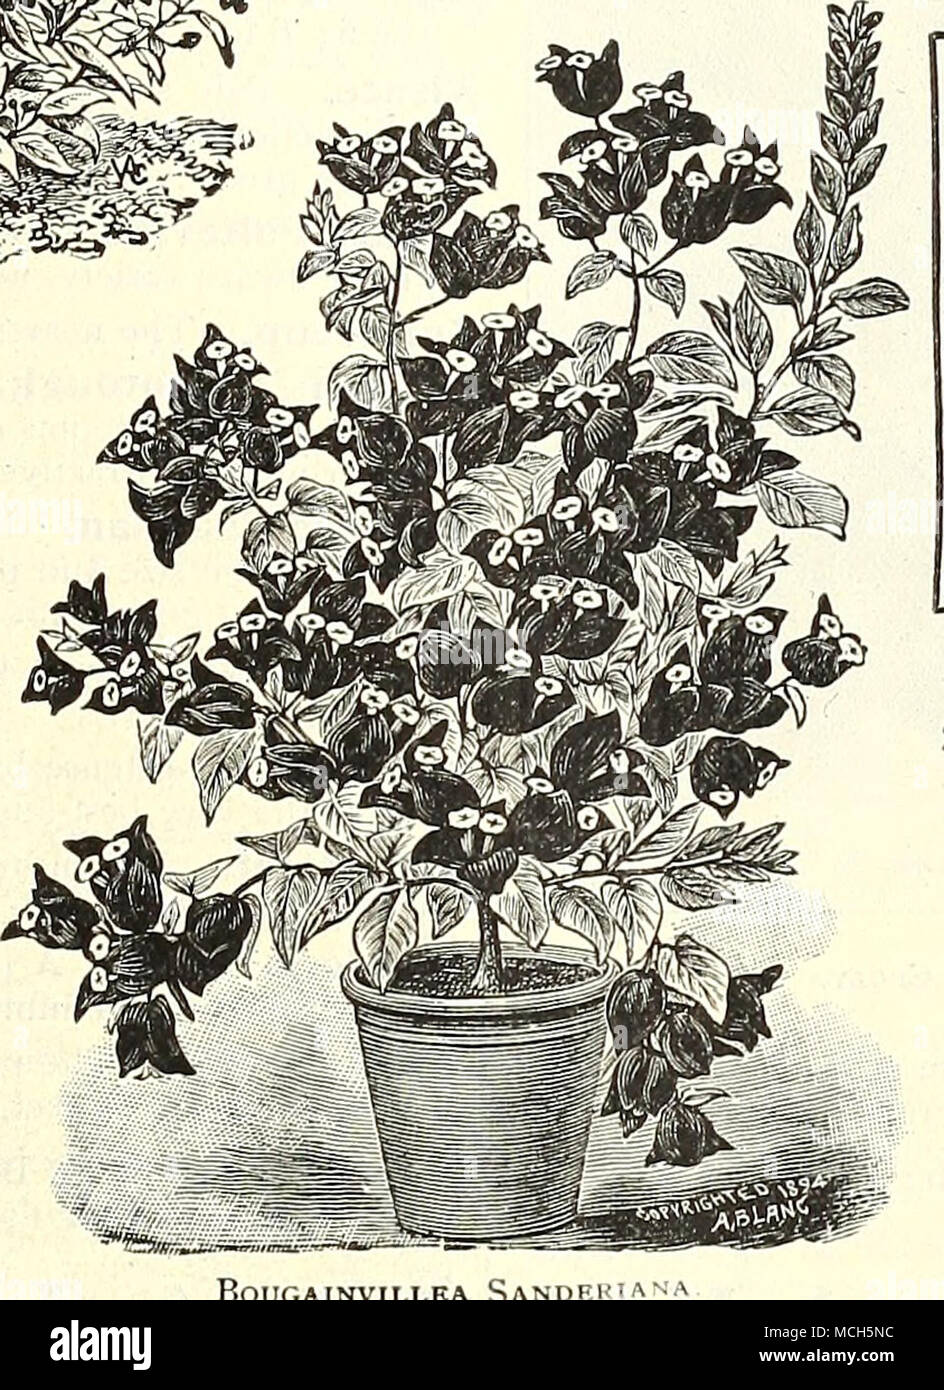 TWO GRAND FREE FLOW ERING TUBEROUS ROOTED BEGONIAS Duke Zeppelin And Lafayette Shown In Colors On The Back Cover Of This Book Are De Scribed